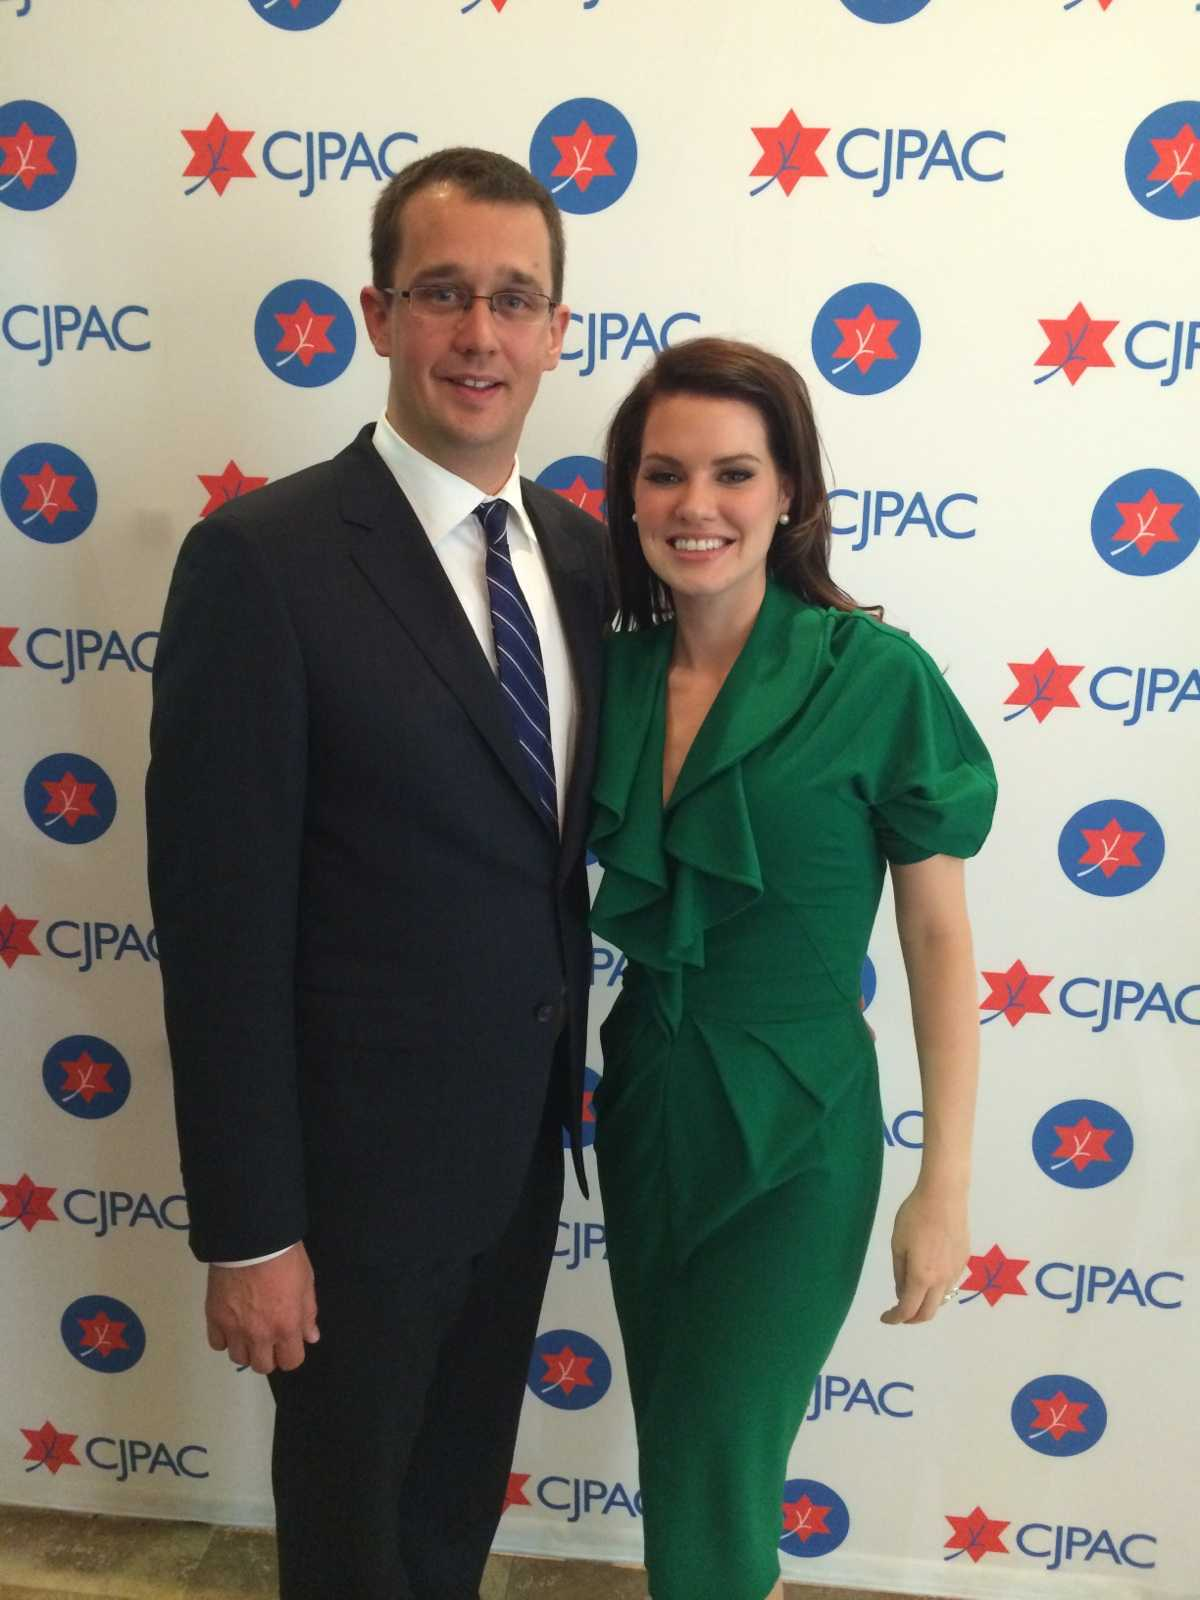 CJPAC'S Fellowship Conference: the future looks bright